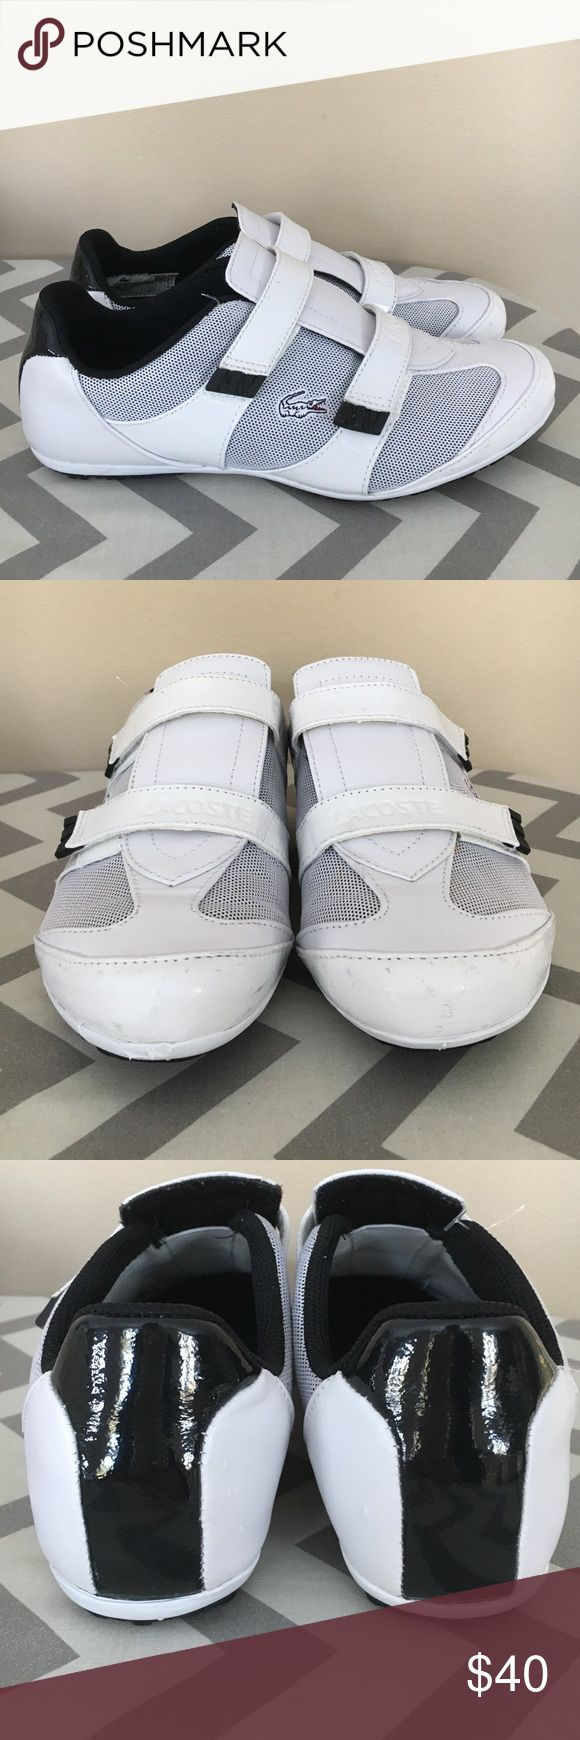 Lacoste Sneakers for women 💚 New without tags! Some scuff marks, see pictures. Lacoste Shoes Sneakers